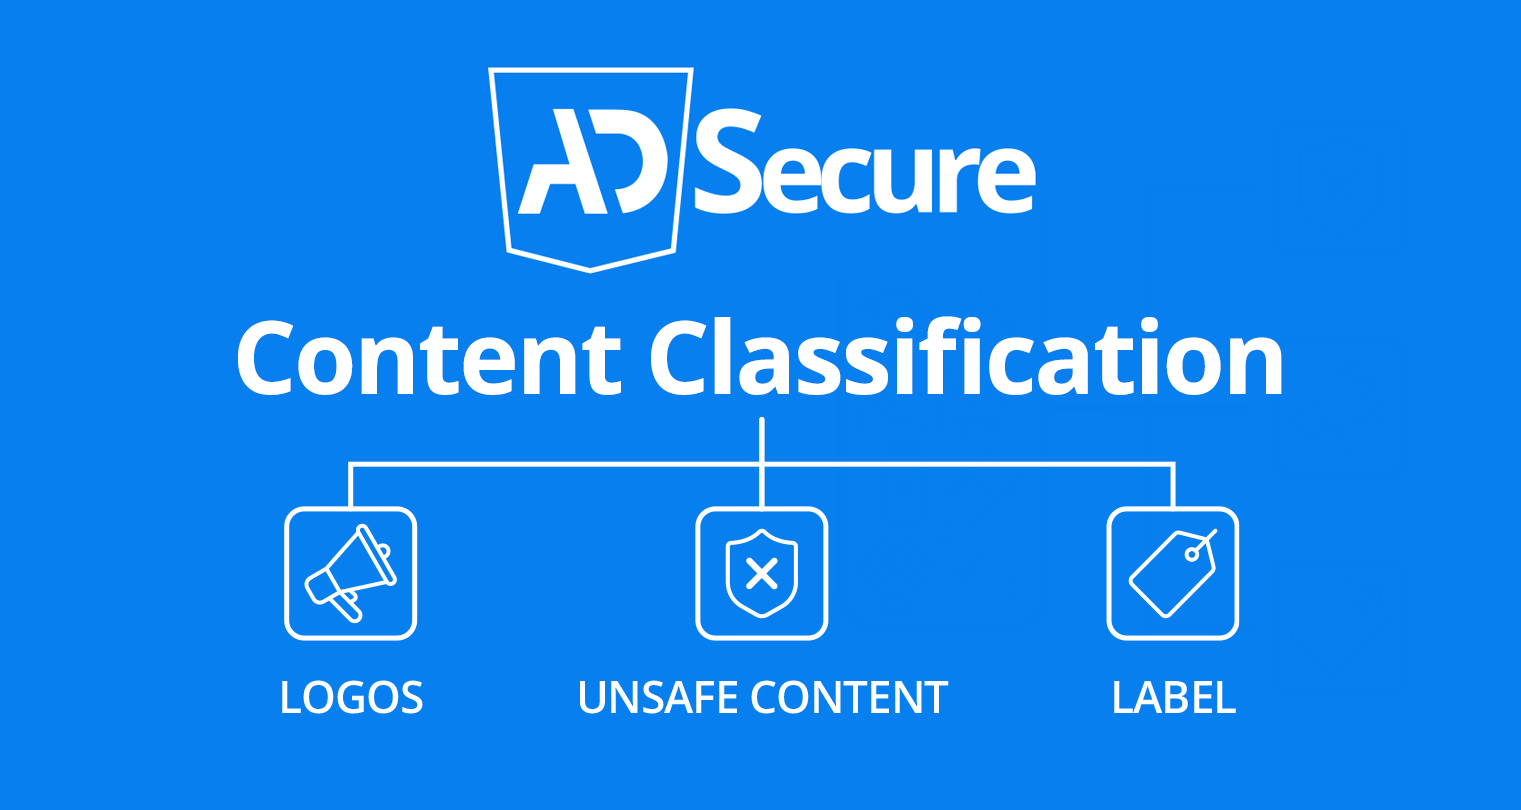 AdSecure Releases Content Classification Feature